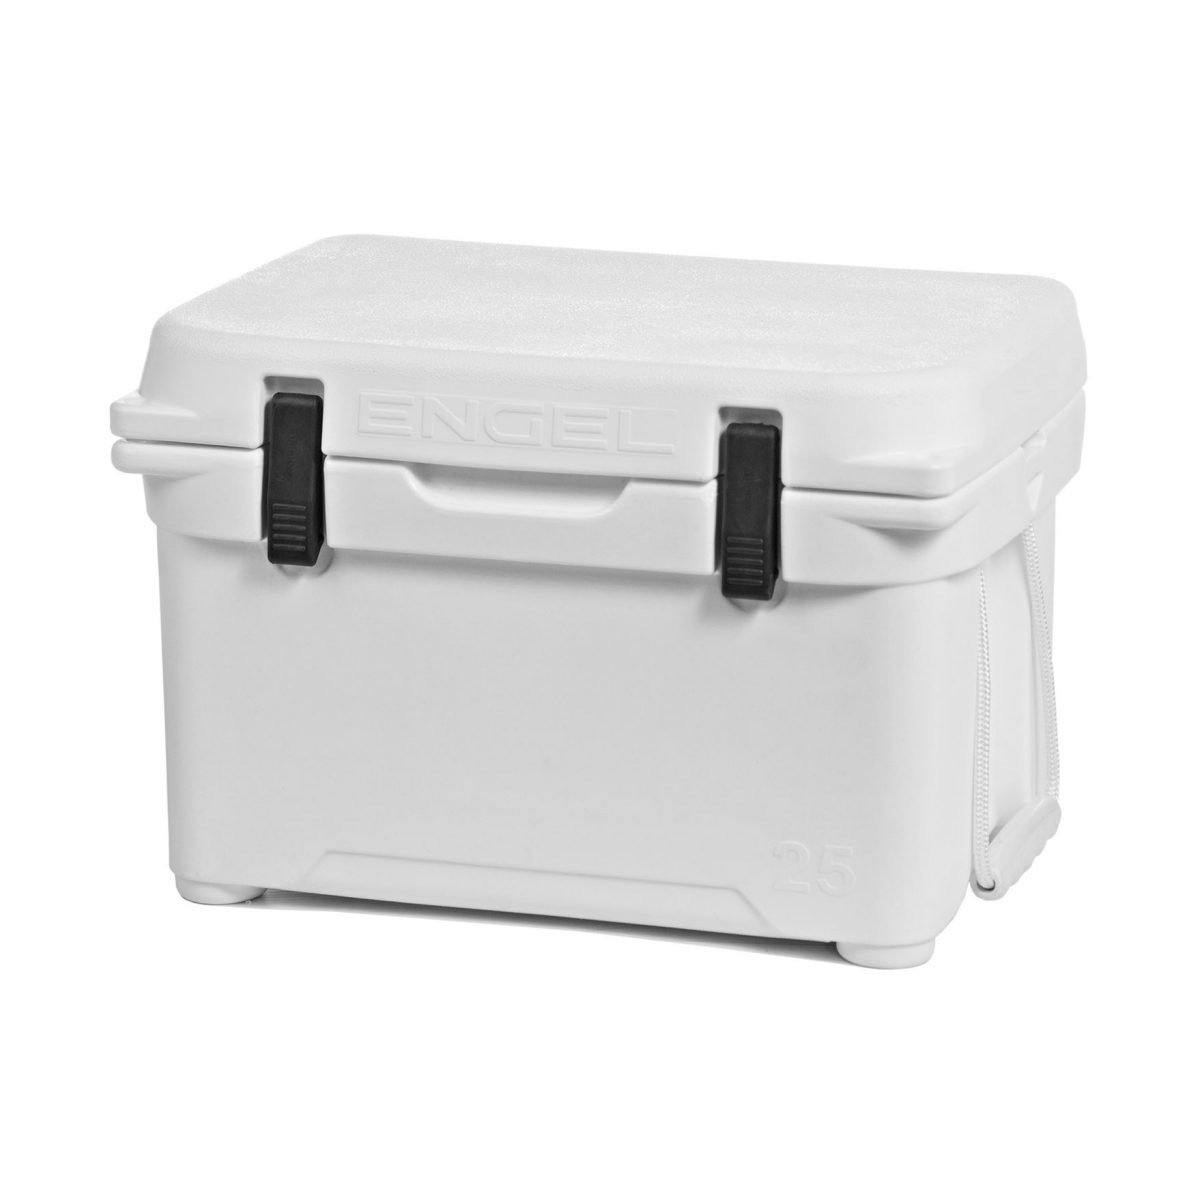 Engel 25 Hard Cooler (4349815881800)